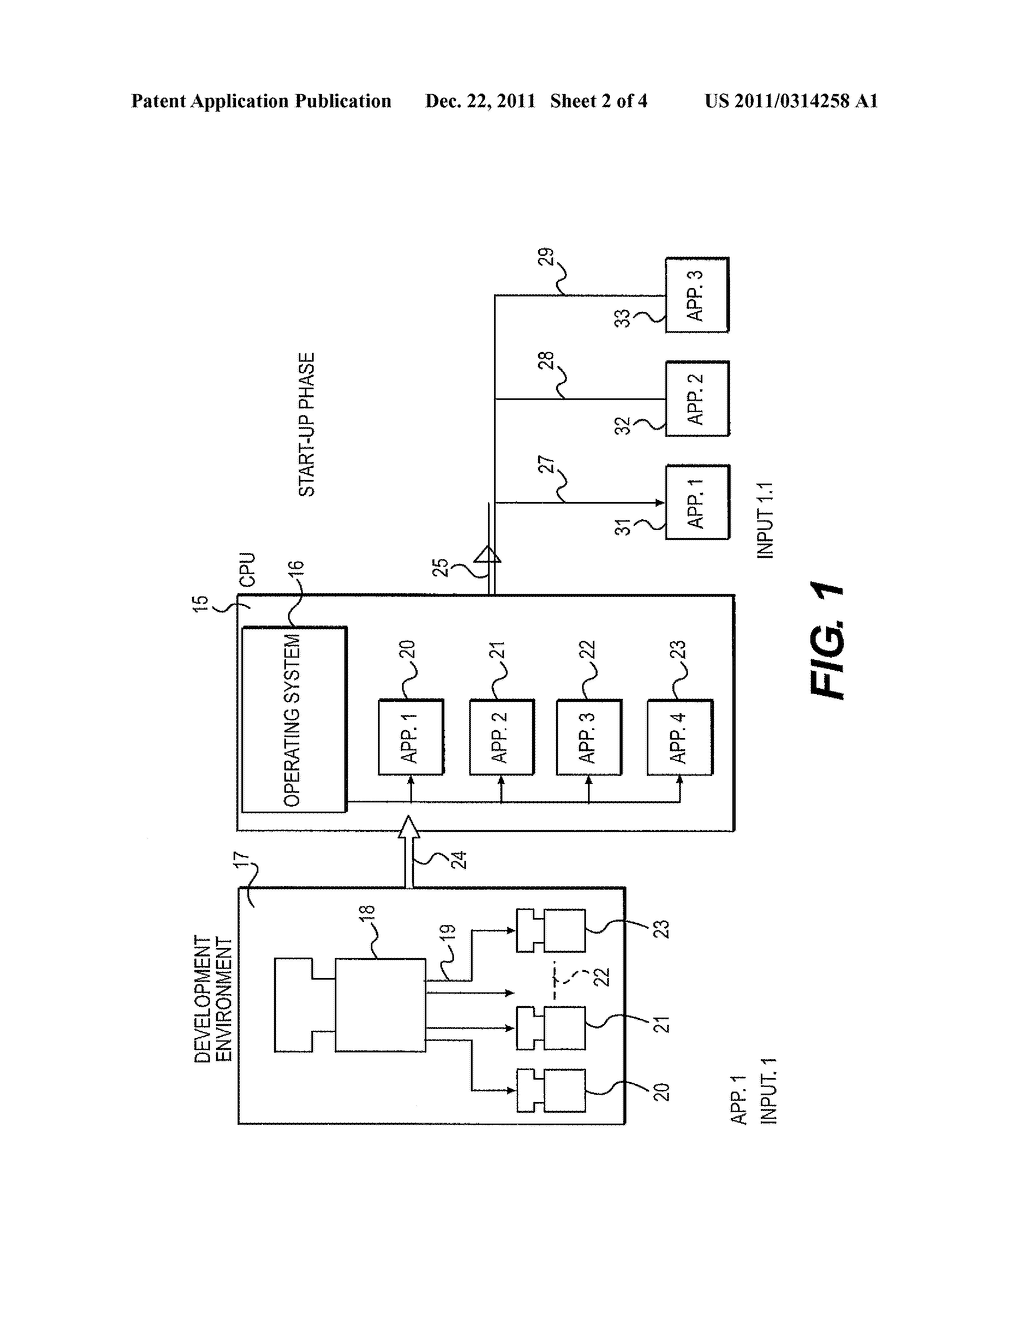 Method And Apparatus For Operating A Programmable Logic Controller Diagram Plc With Decentralized Autonomous Sequence Control Schematic Image 03